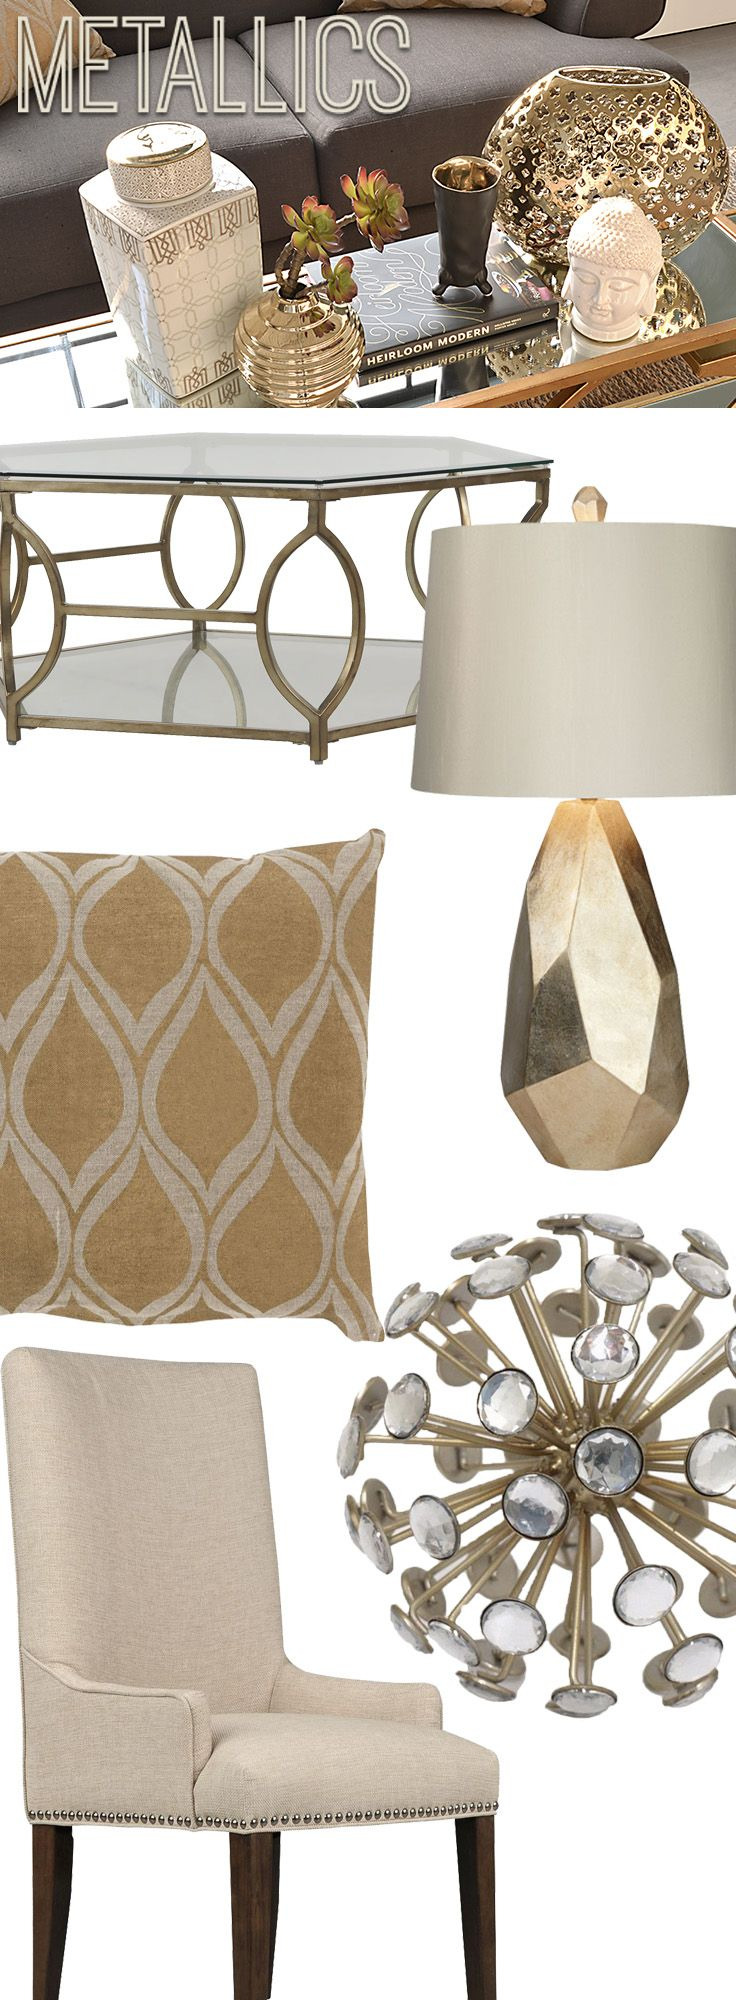 Add Some Metallic Accents To Your Home For A Little Sparkle And Shine Shop Online